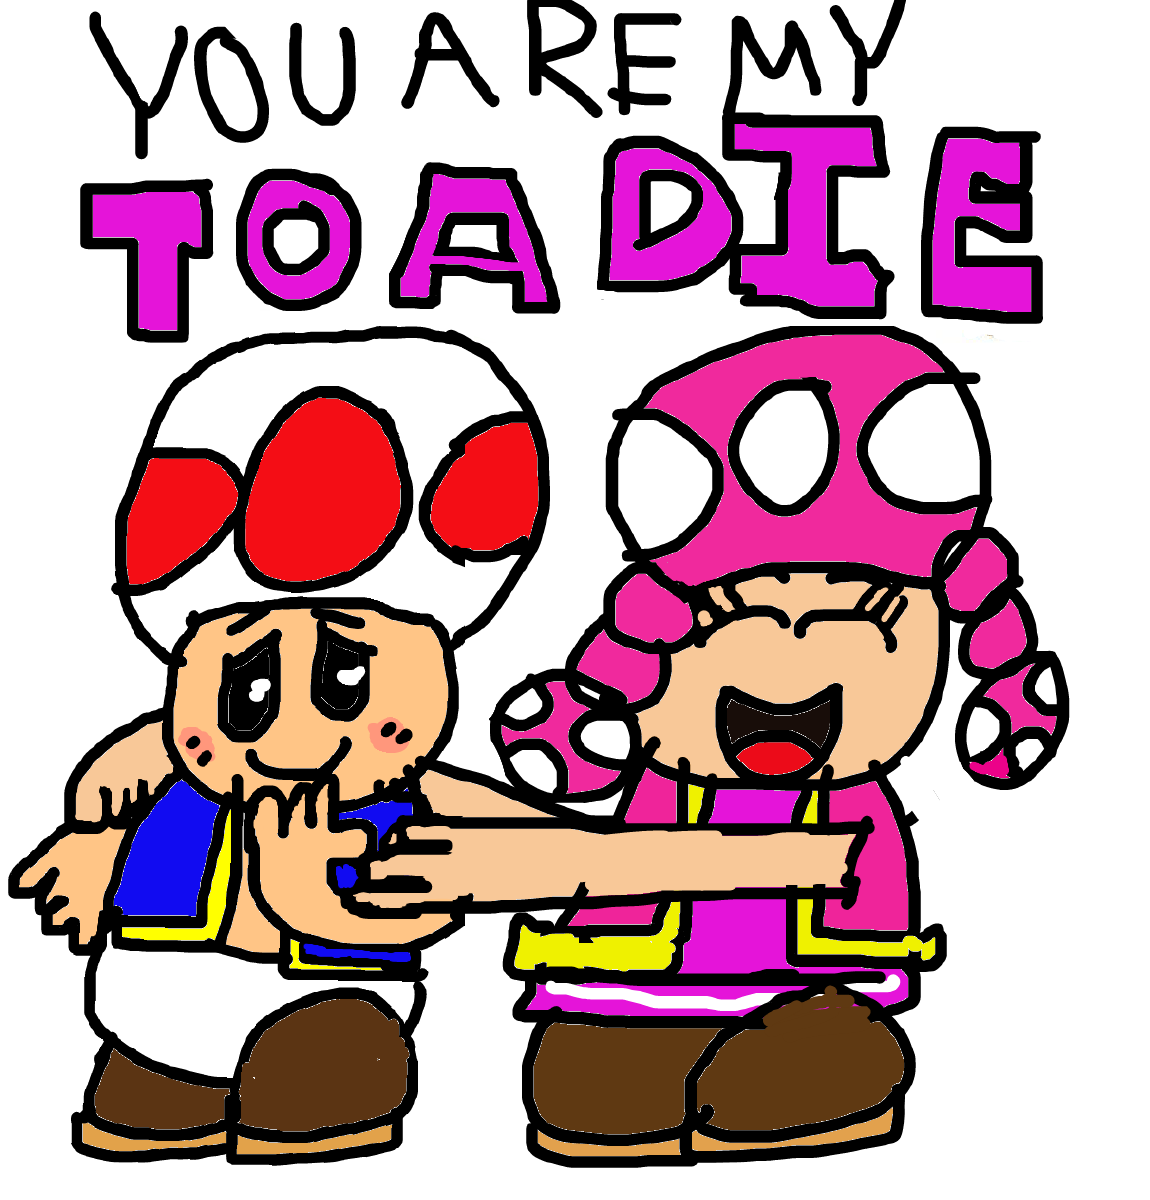 Toad X Toadette - You Are My Toadie by Dariusman143